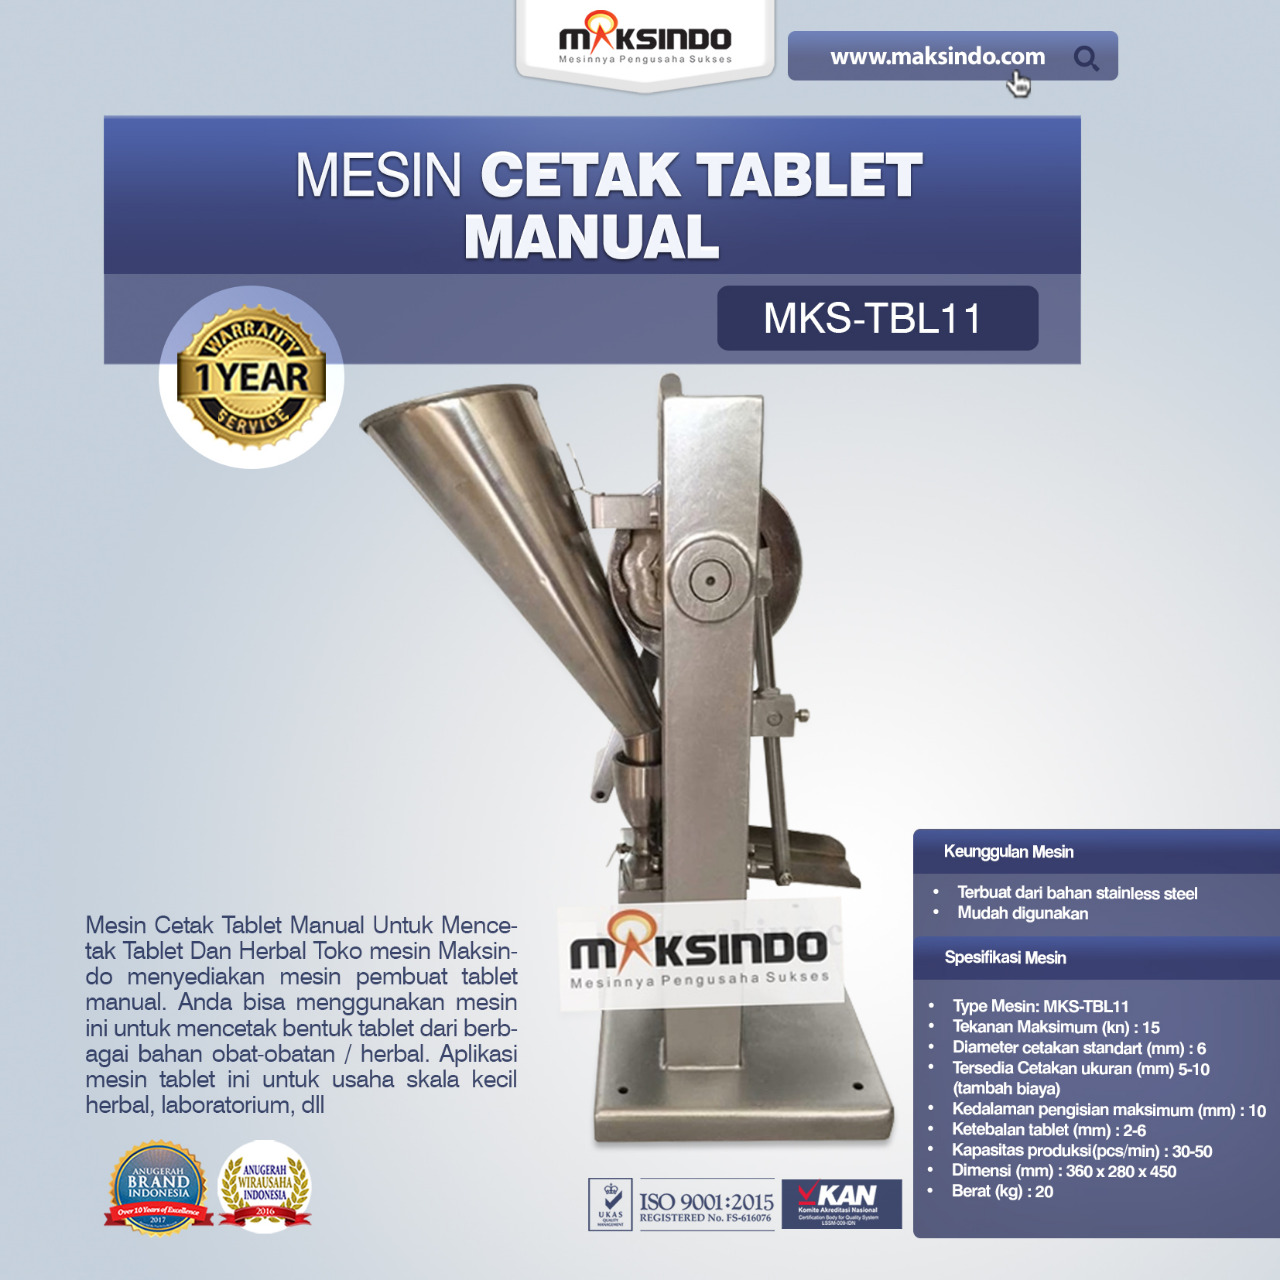 Mesin Cetak Tablet Manual – MKS-TBL11